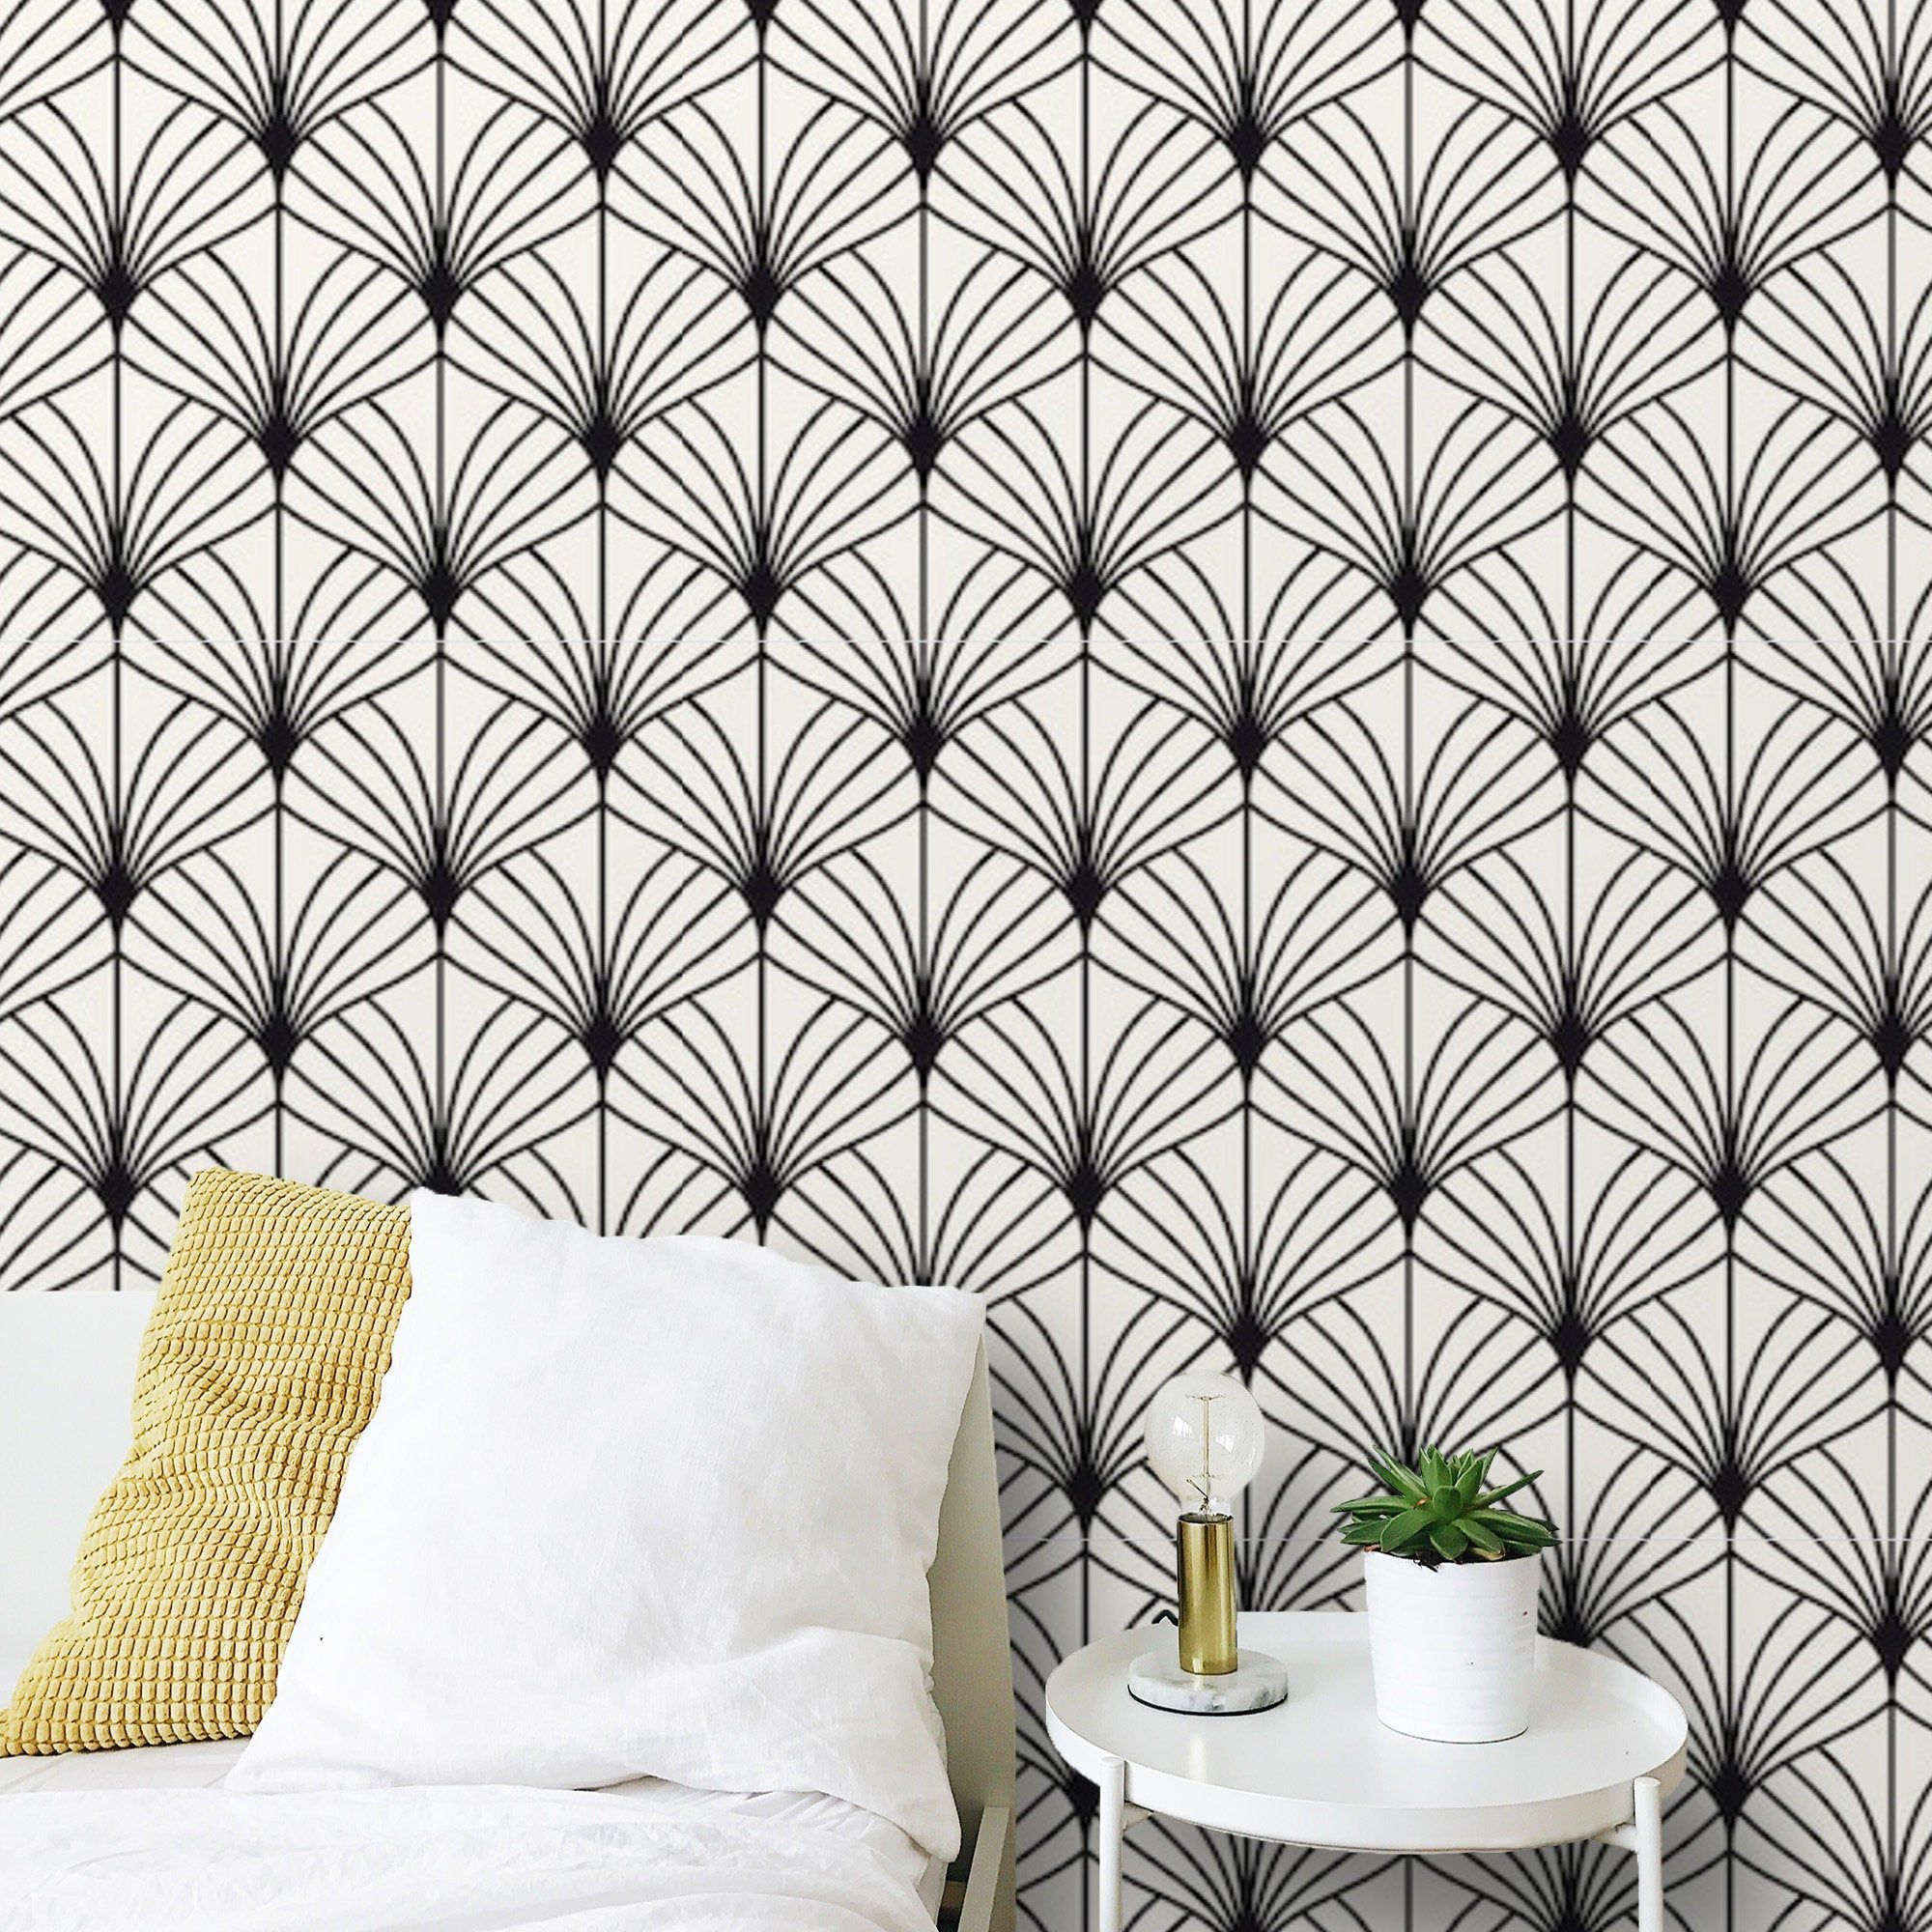 Peel And Stick Art Deco Wallpaper Black And White Modern Self Etsy In 2020 Art Deco Wallpaper Temporary Wallpaper Mural Wallpaper